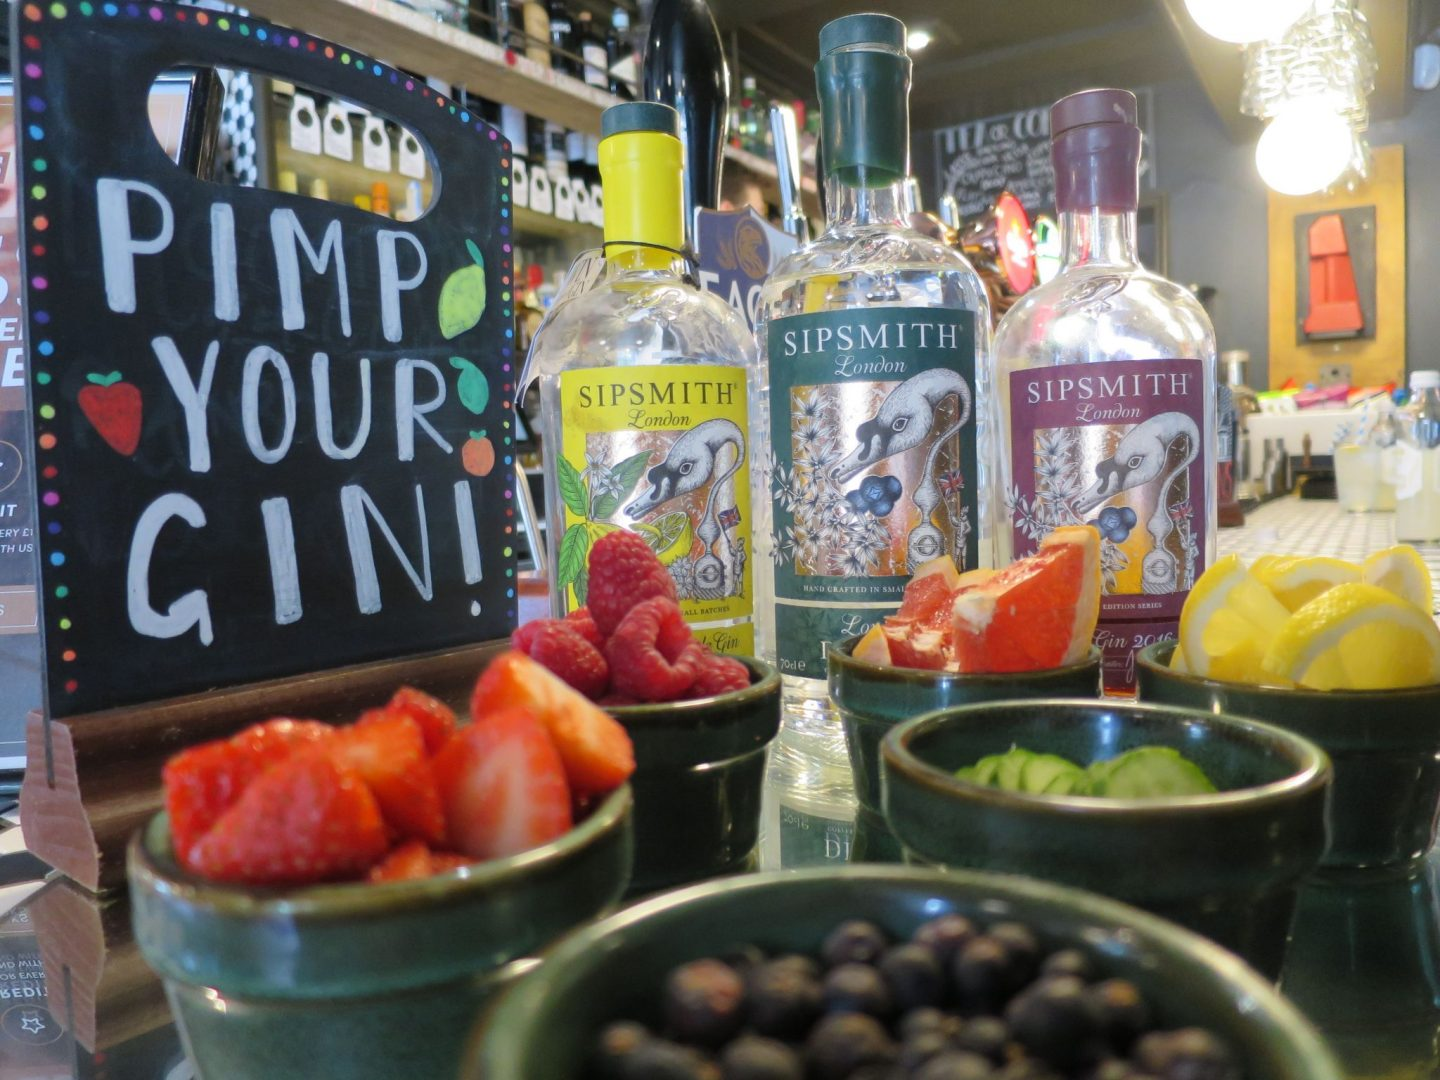 Pimp your gin station on the bar at The Wheatsheaf Bow Brickhill, with Sipsmith gin and lots of fruits